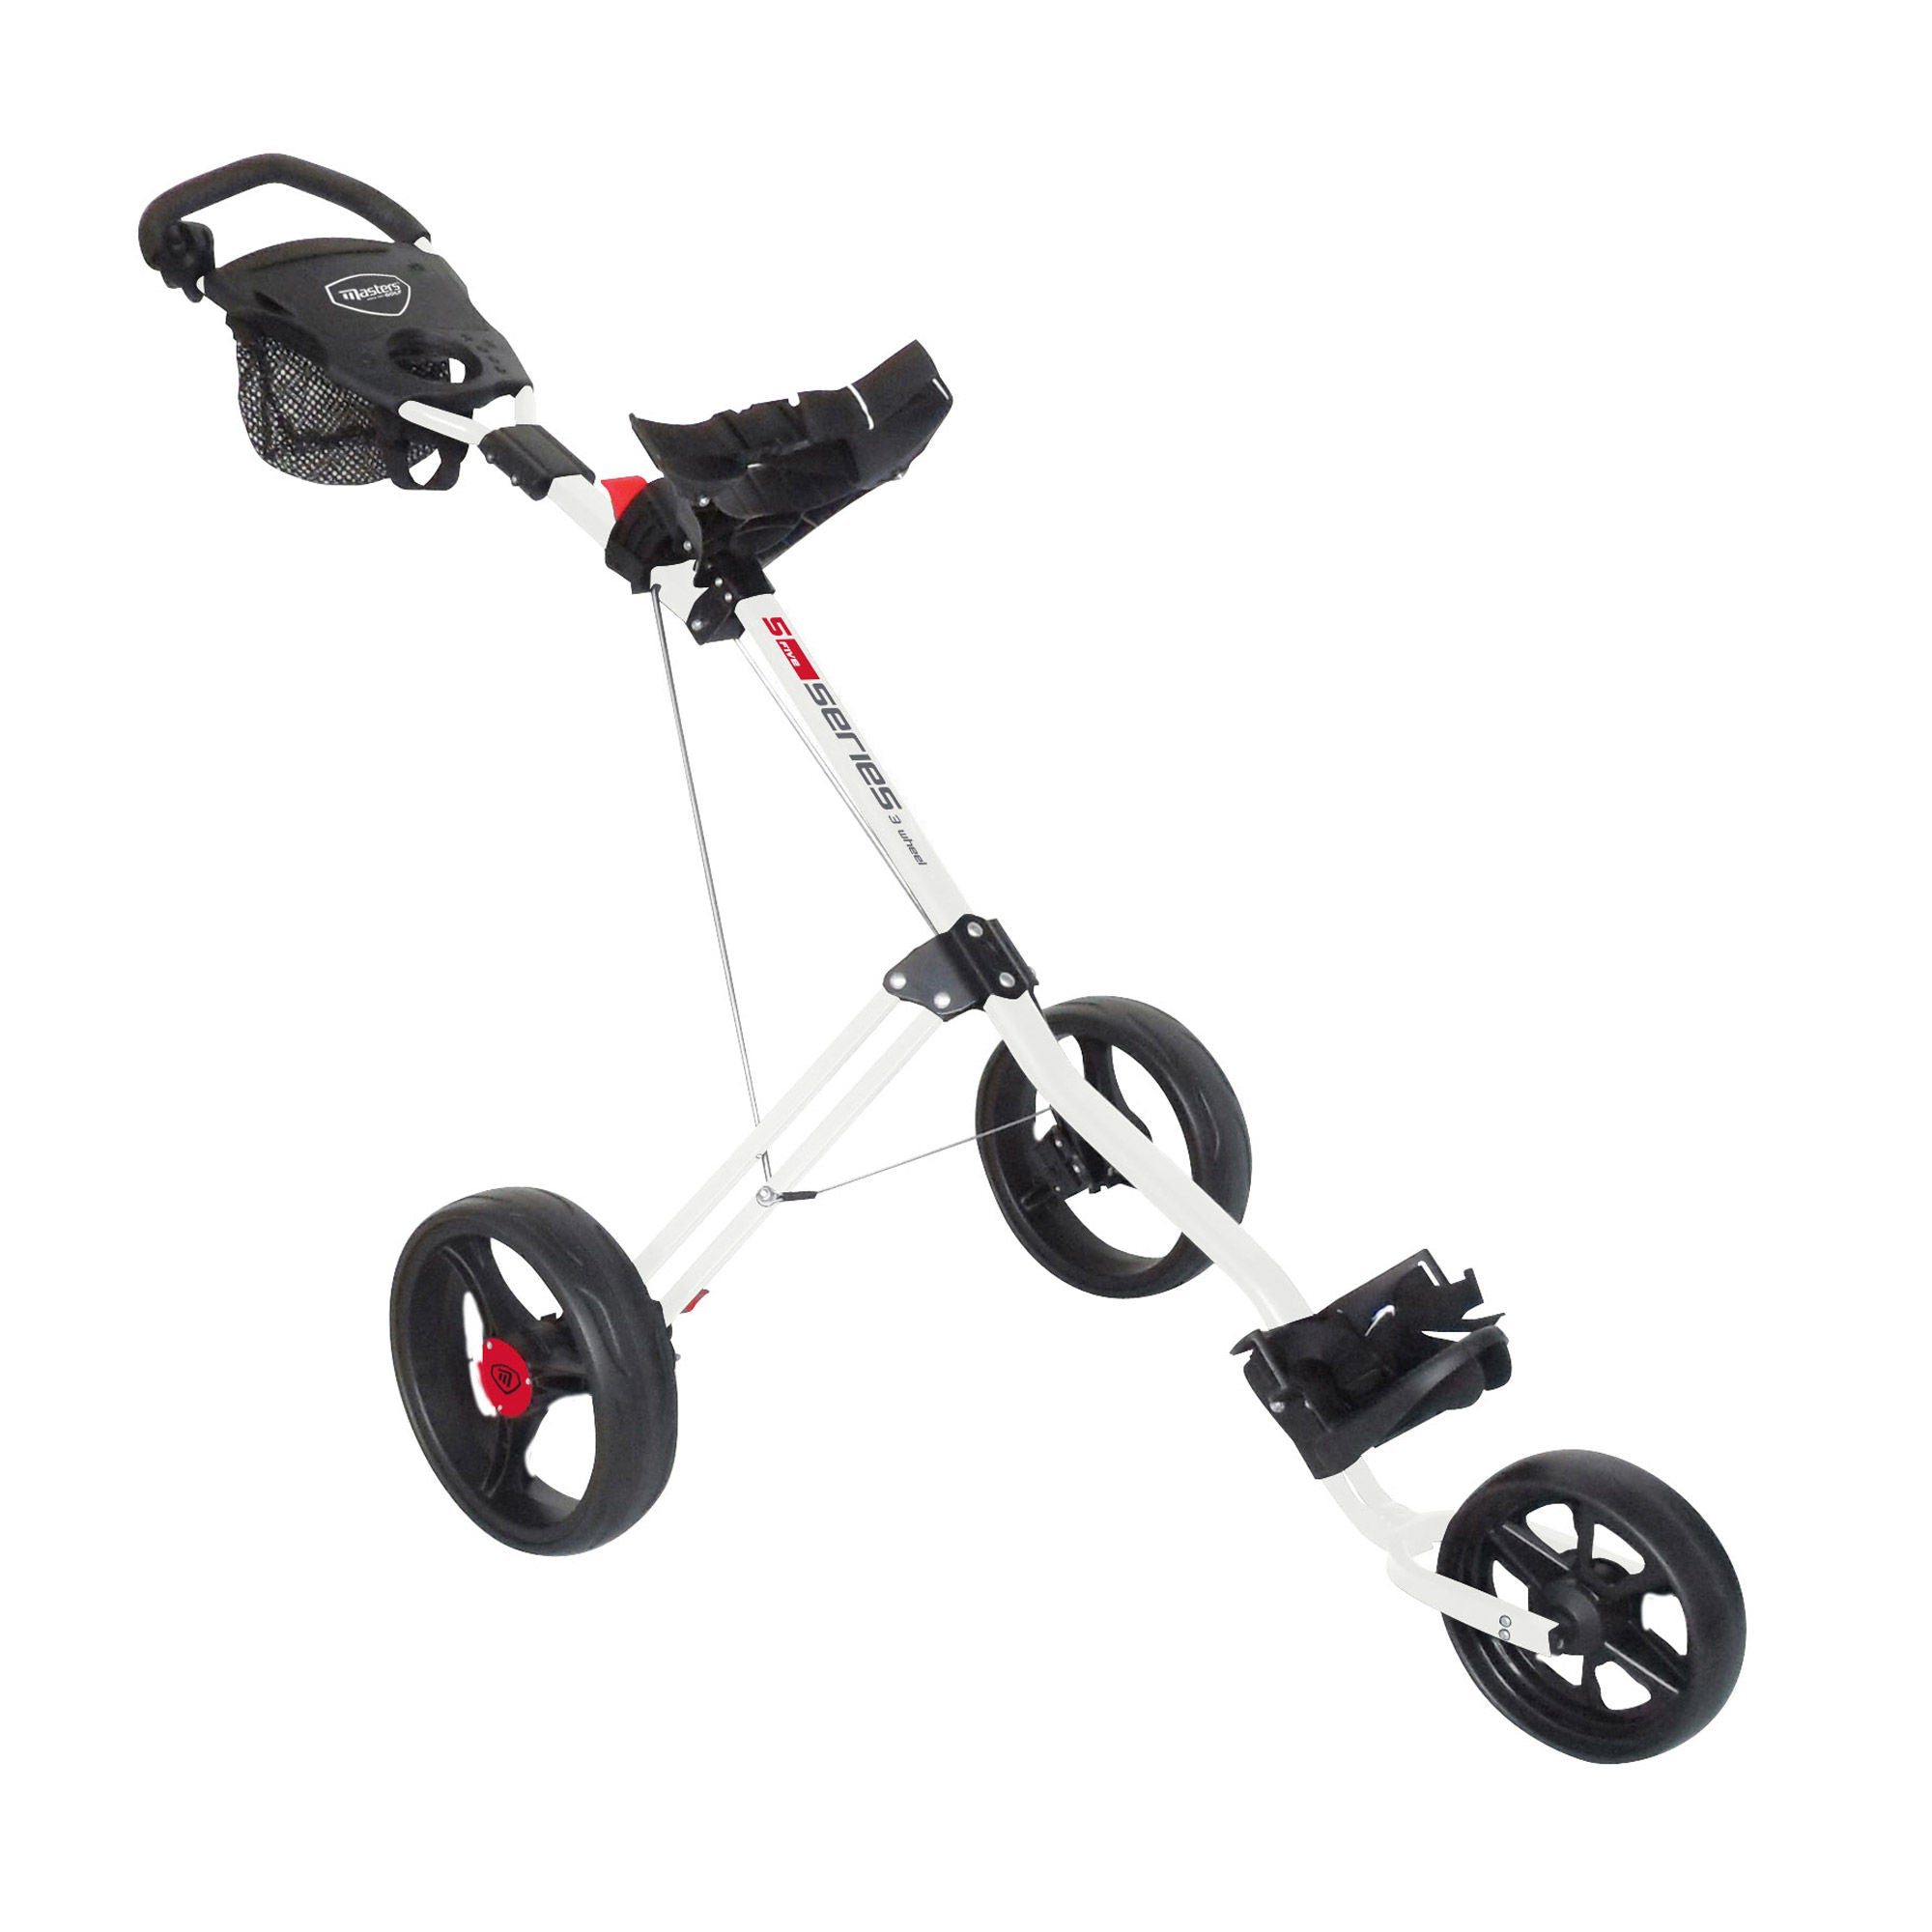 Masters 5 Series 3 Wheel Trolley (White)